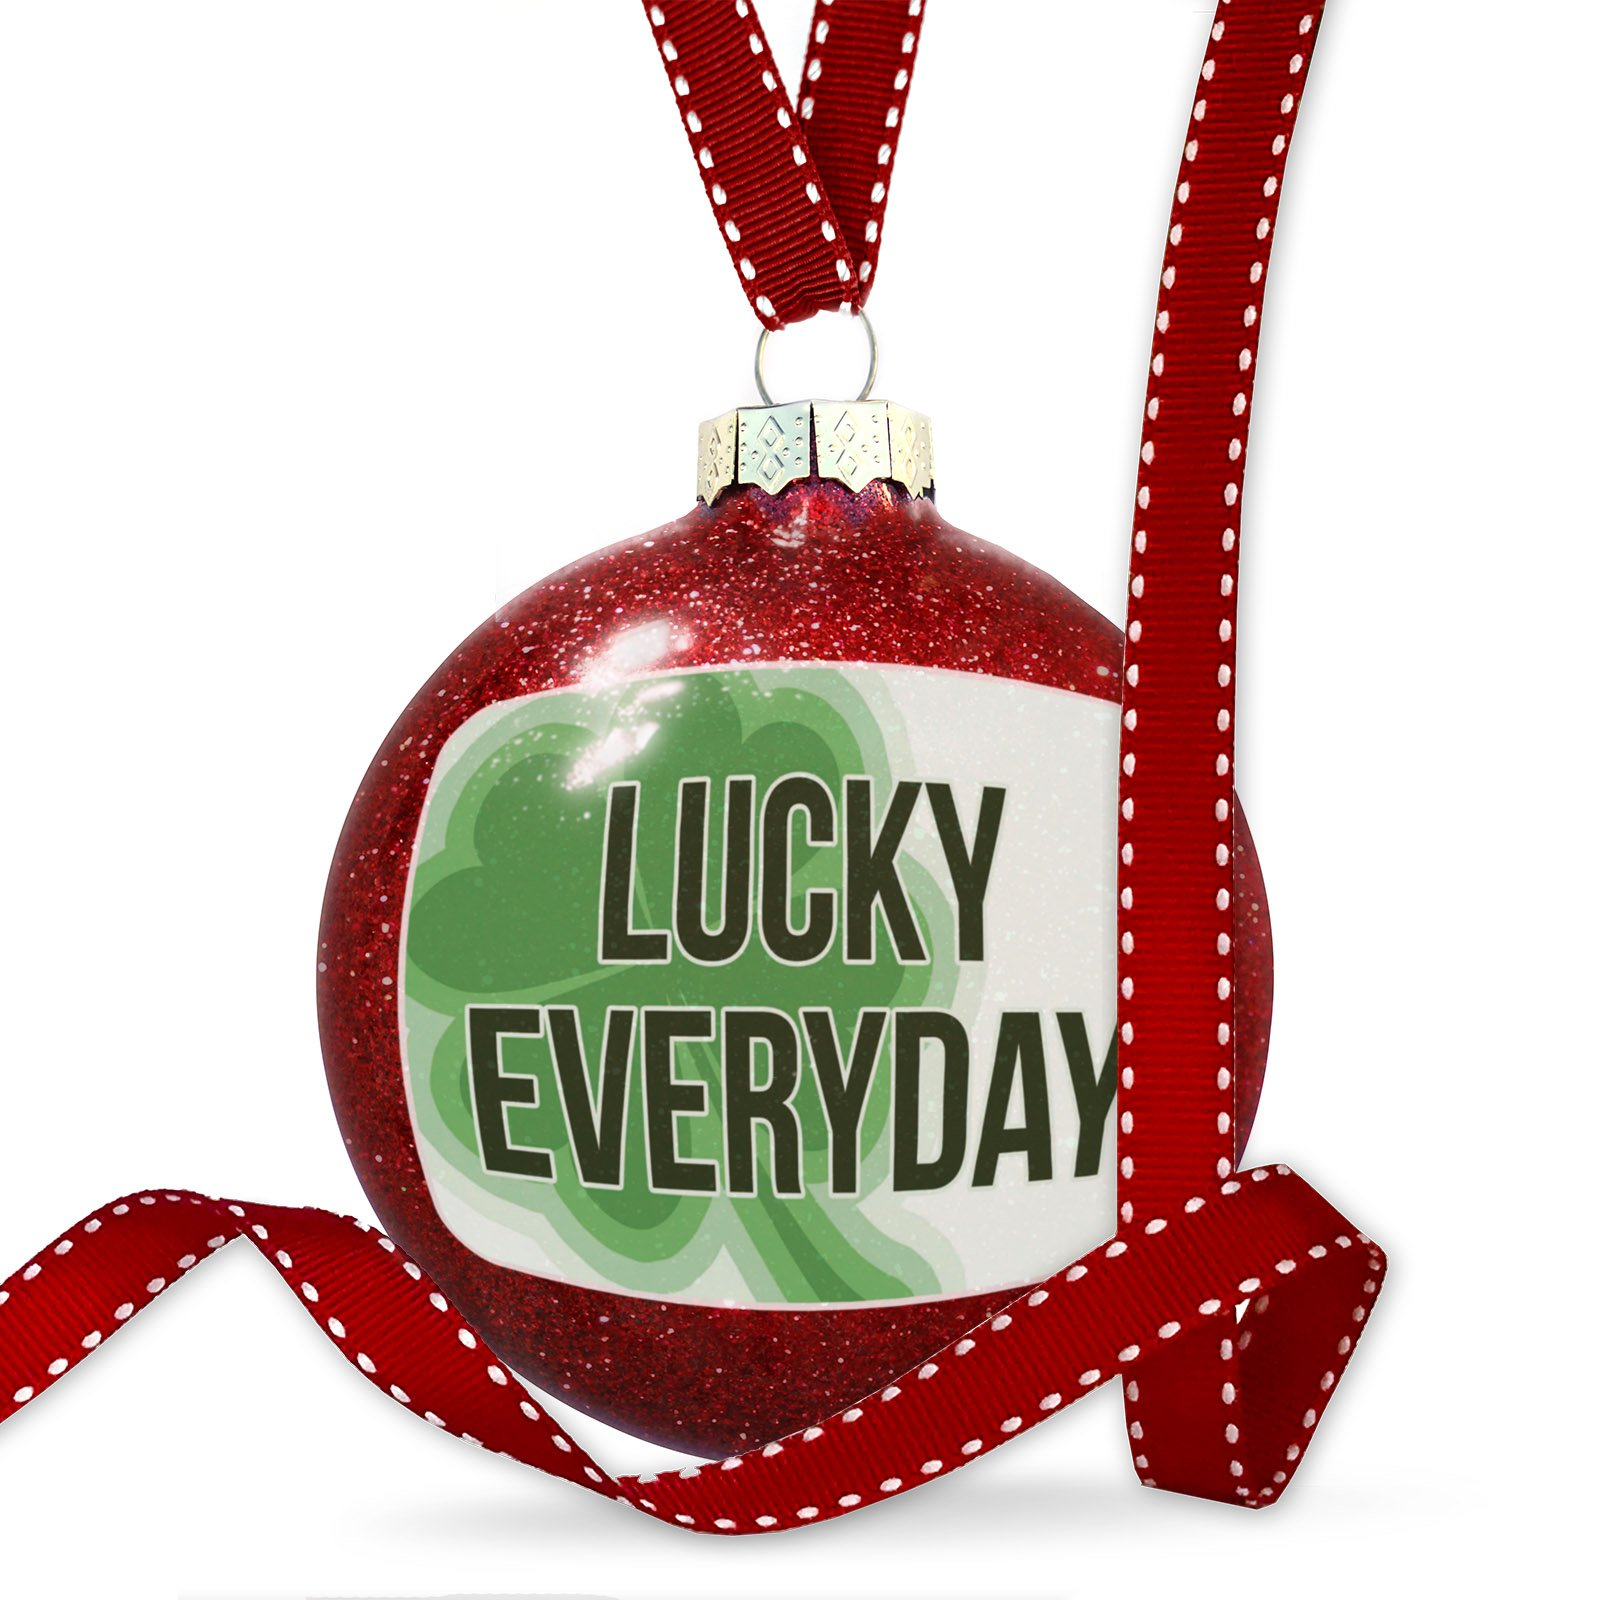 Christmas Decoration Lucky Everyday St. Patrick's Day Large Shamrock Ornament by NEONBLOND